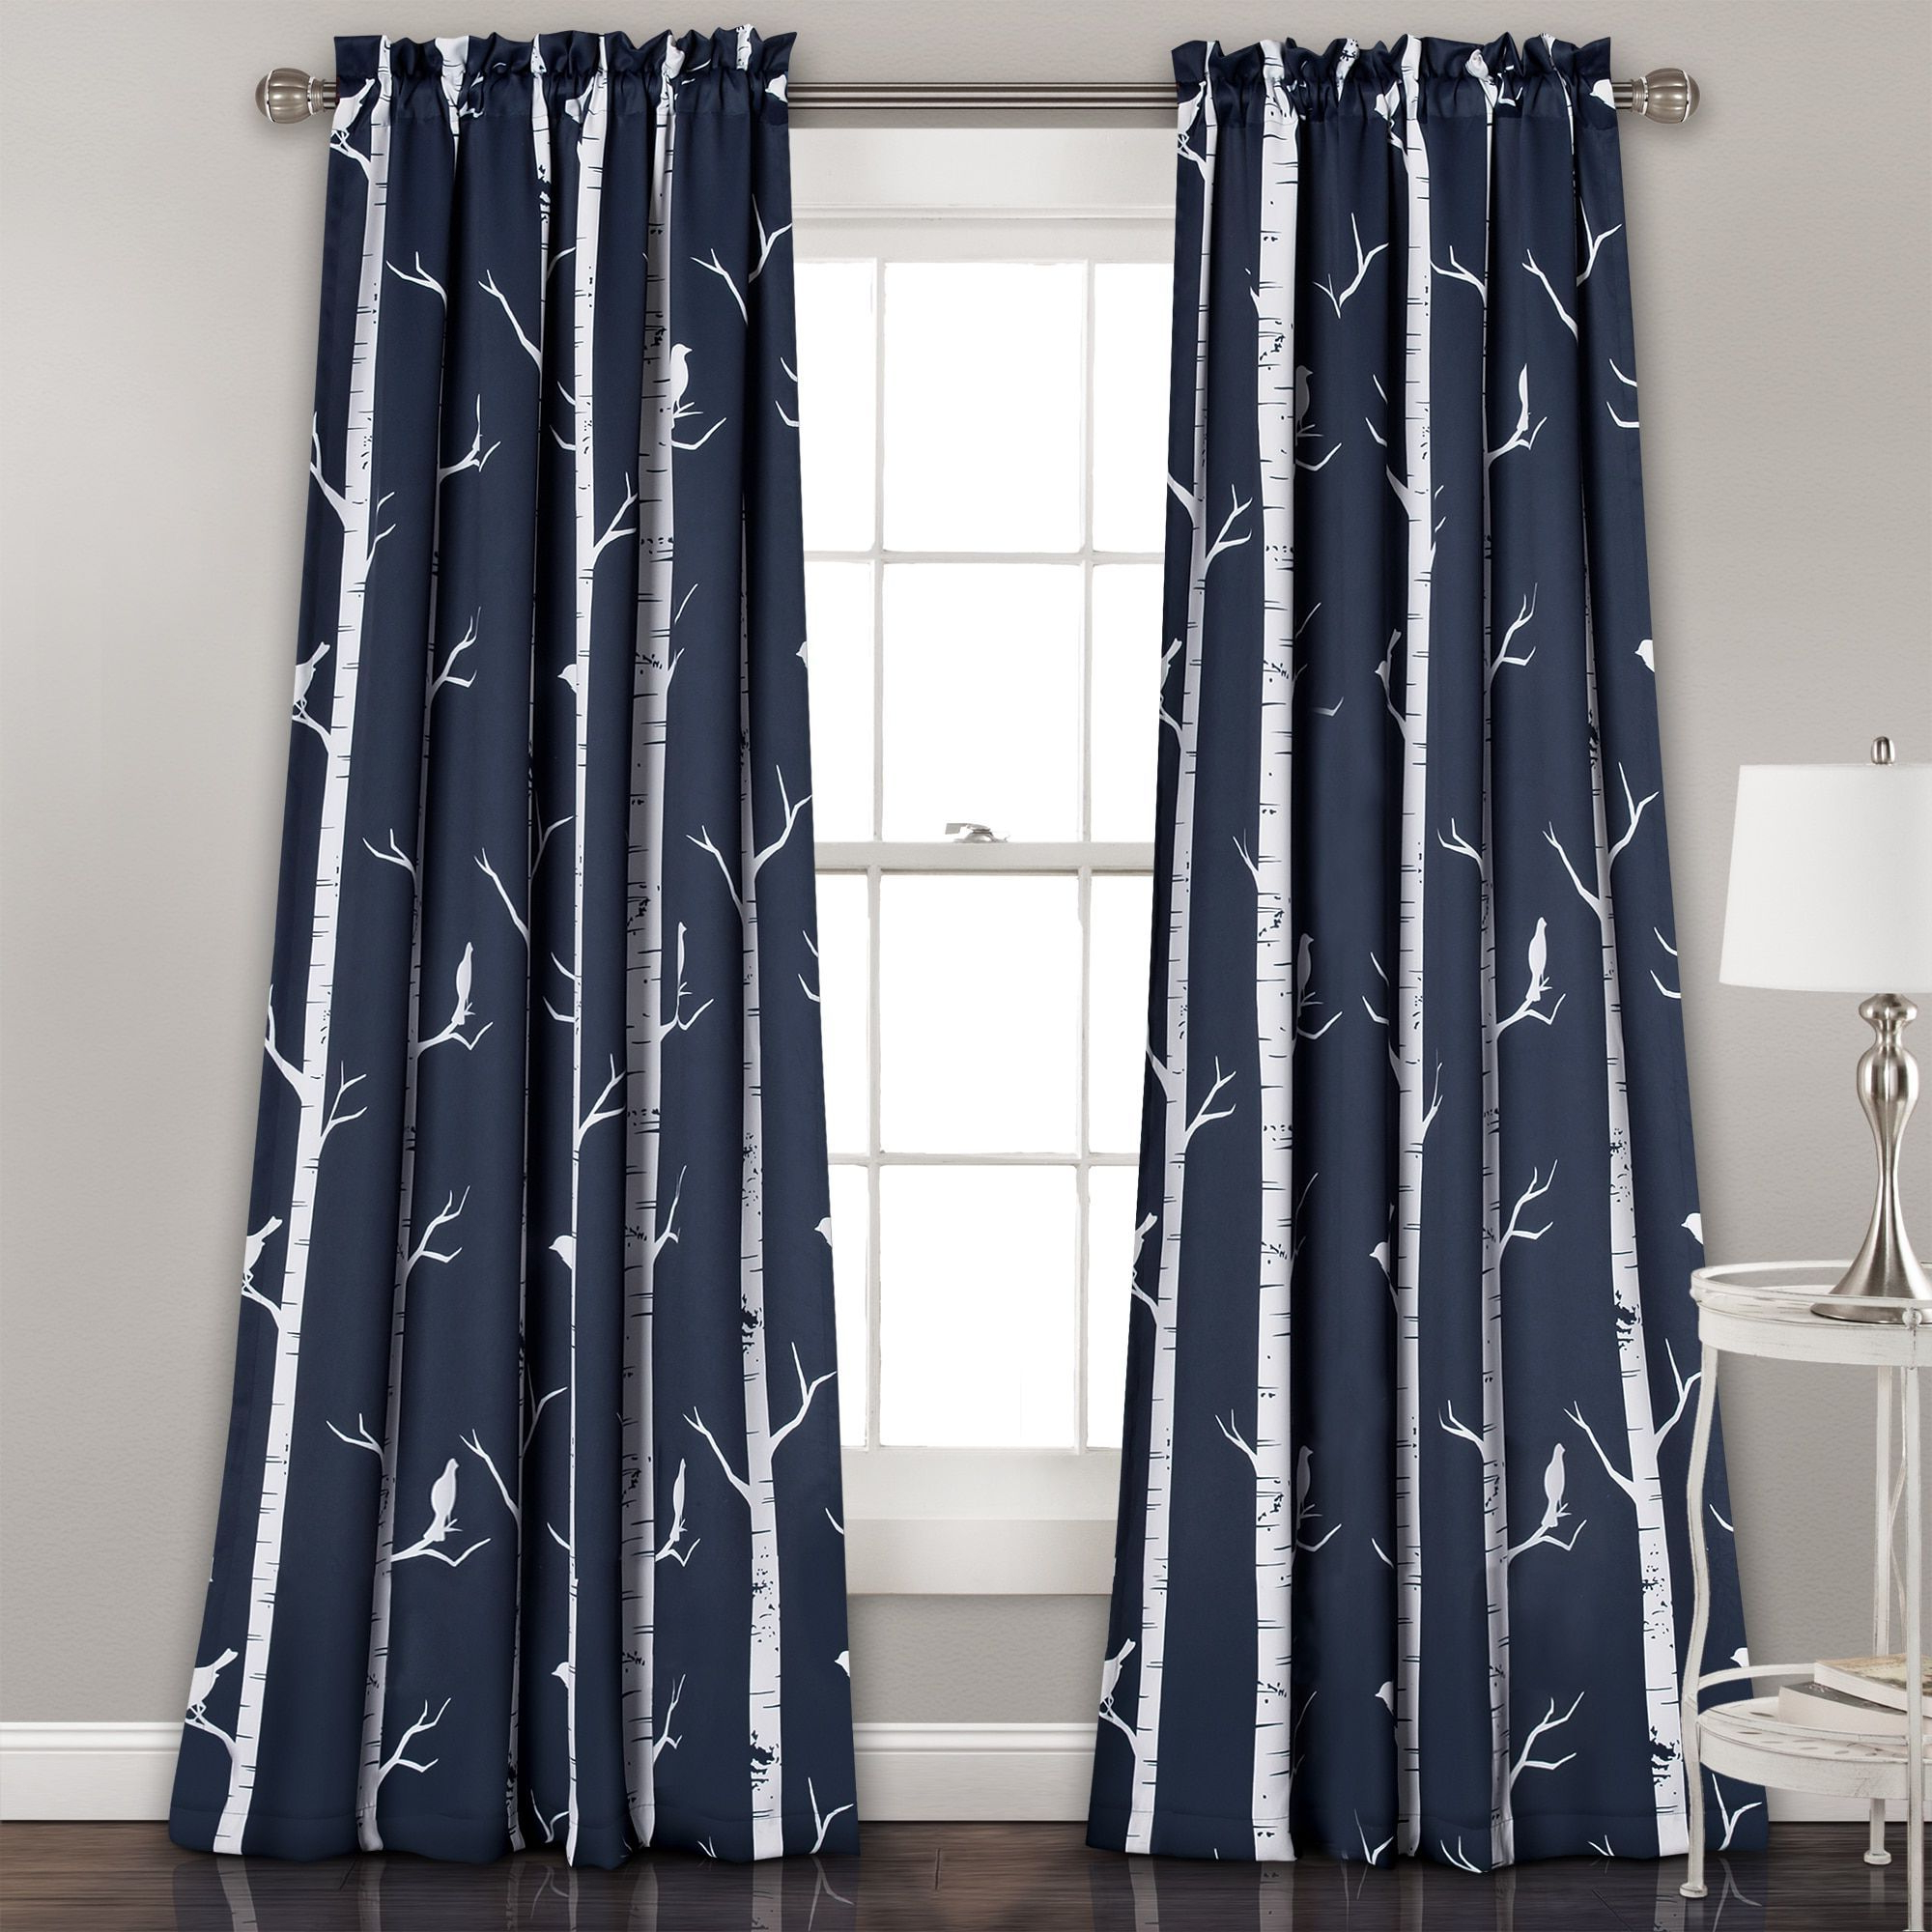 2021 Lush Decor Bird On The Tree Room Darkening Window Curtain Intended For Whitman Curtain Panel Pairs (View 18 of 20)